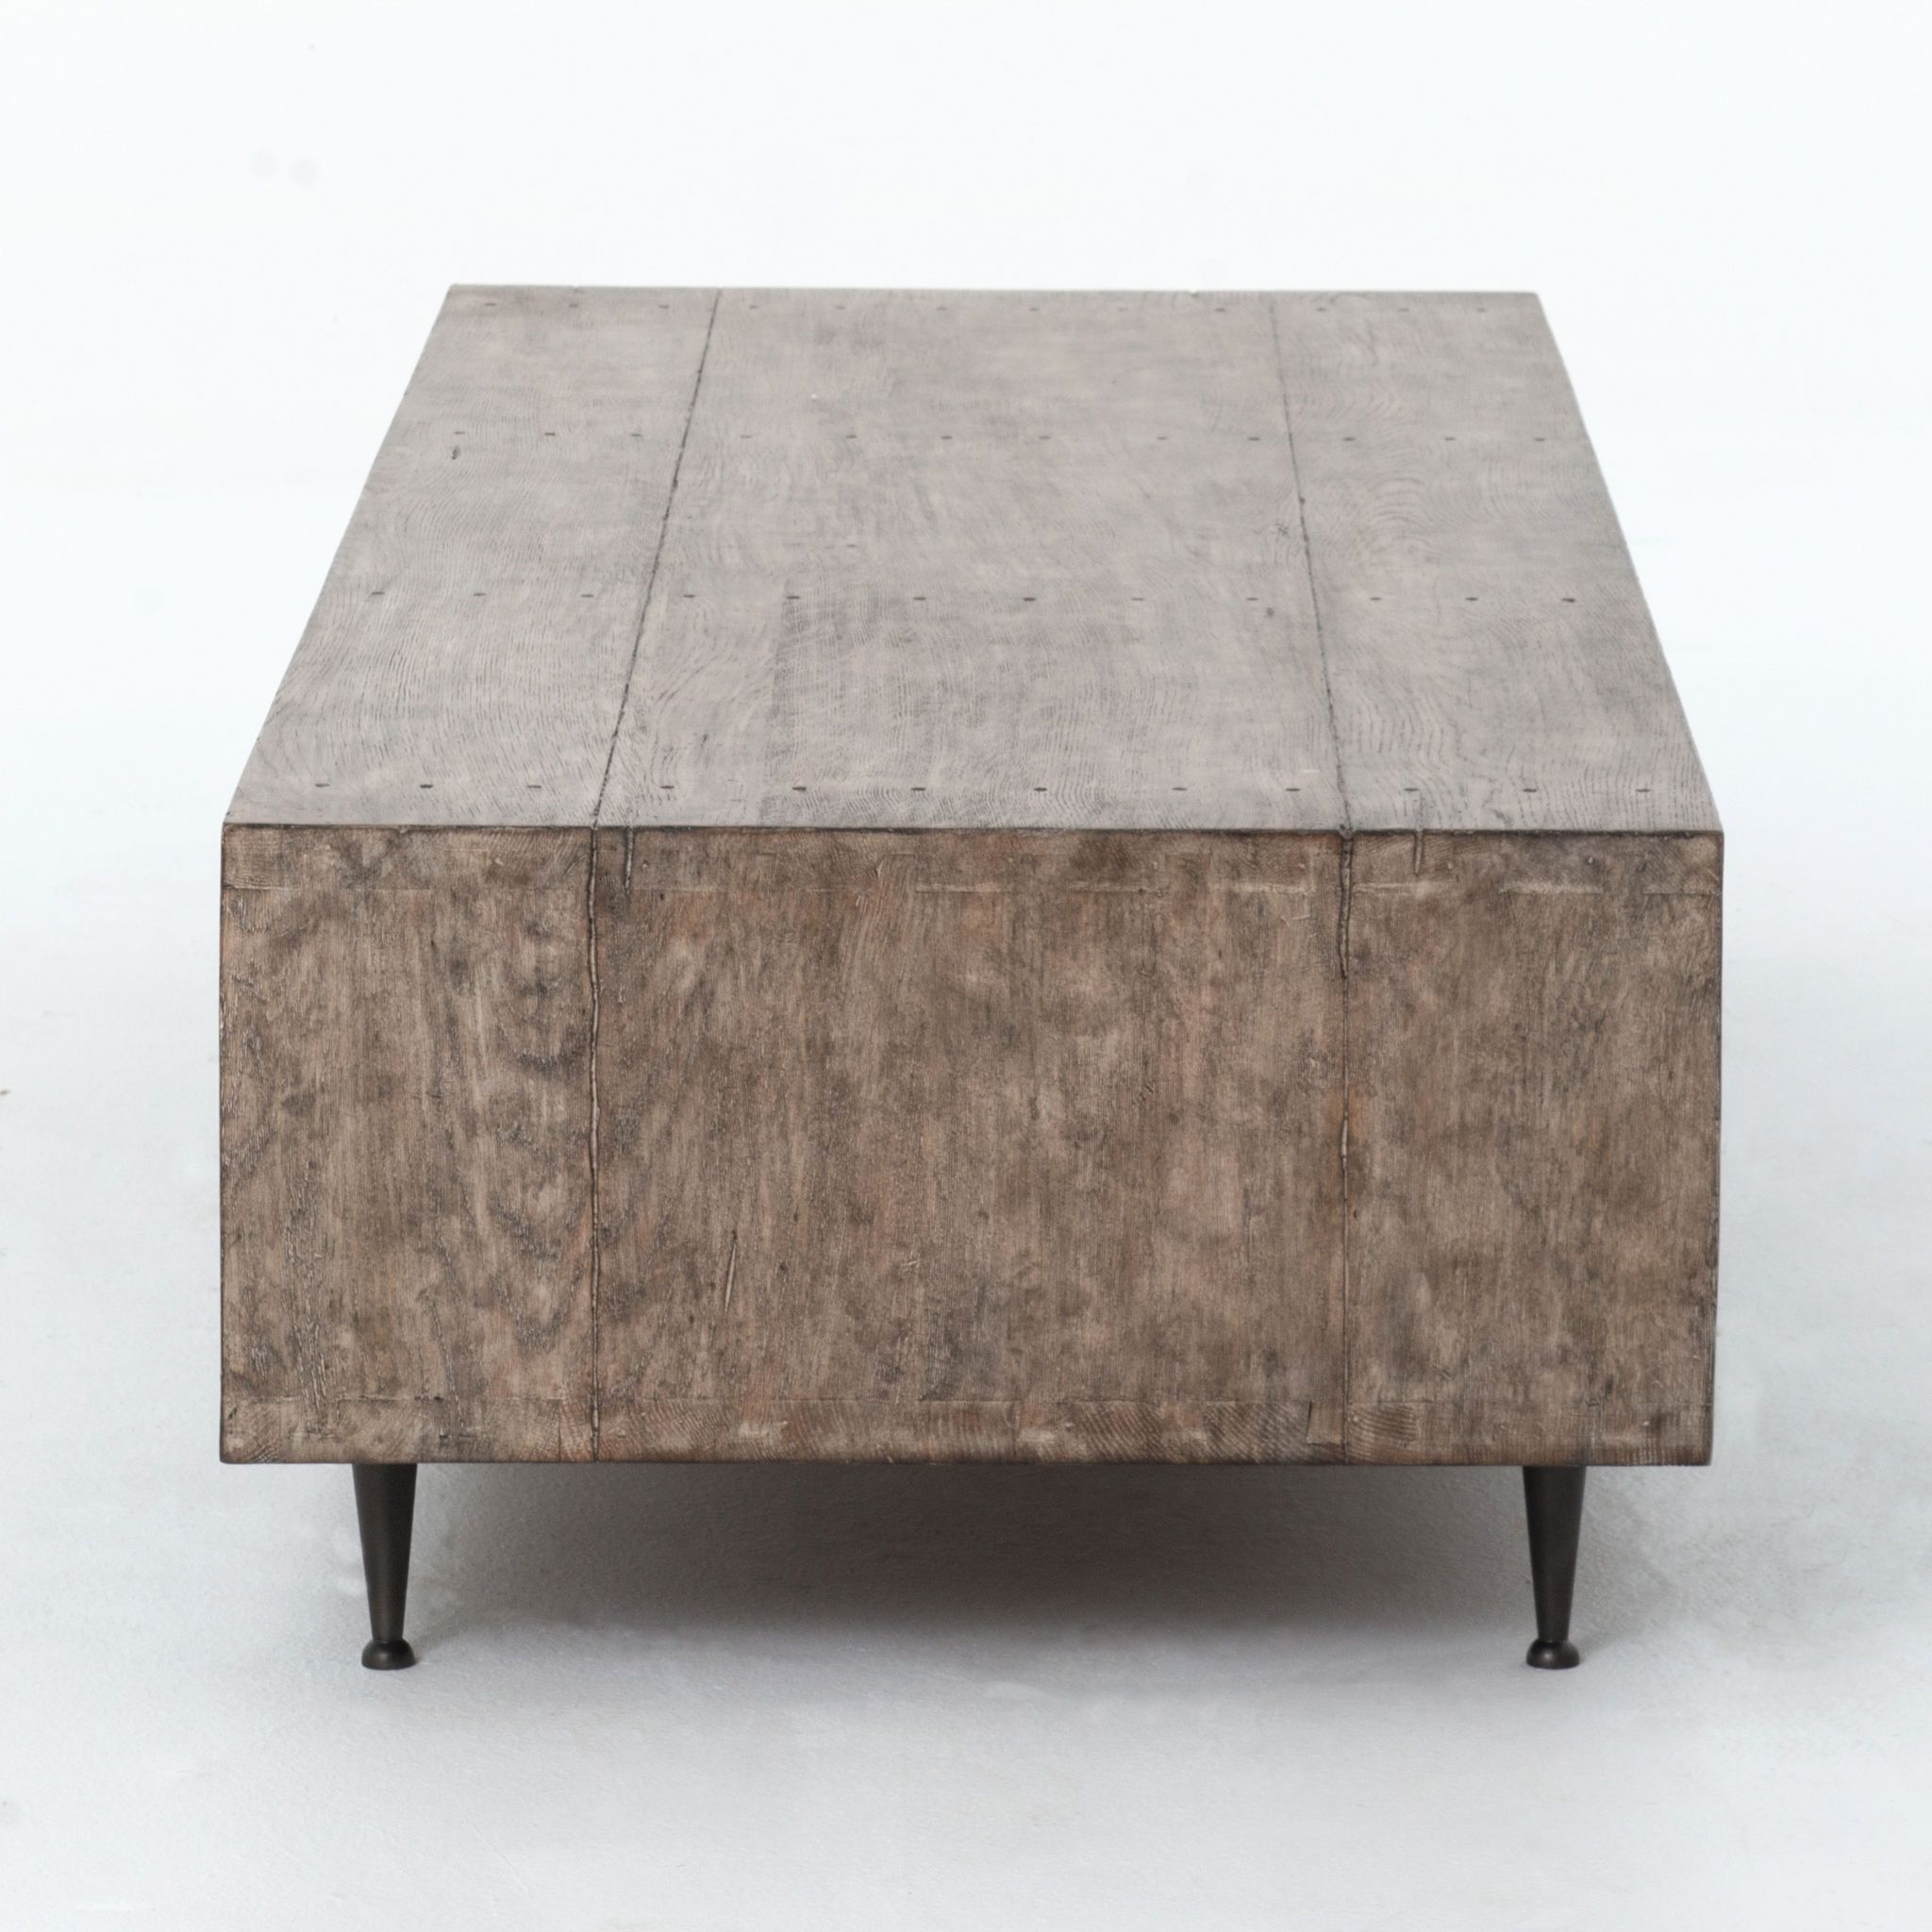 four hands living room elton uttermost driftwood coffee table vbna ct404a in driftwood coffee table natural four hands living room elton uttermost driftwood coffee table vbna      rh   pinterest